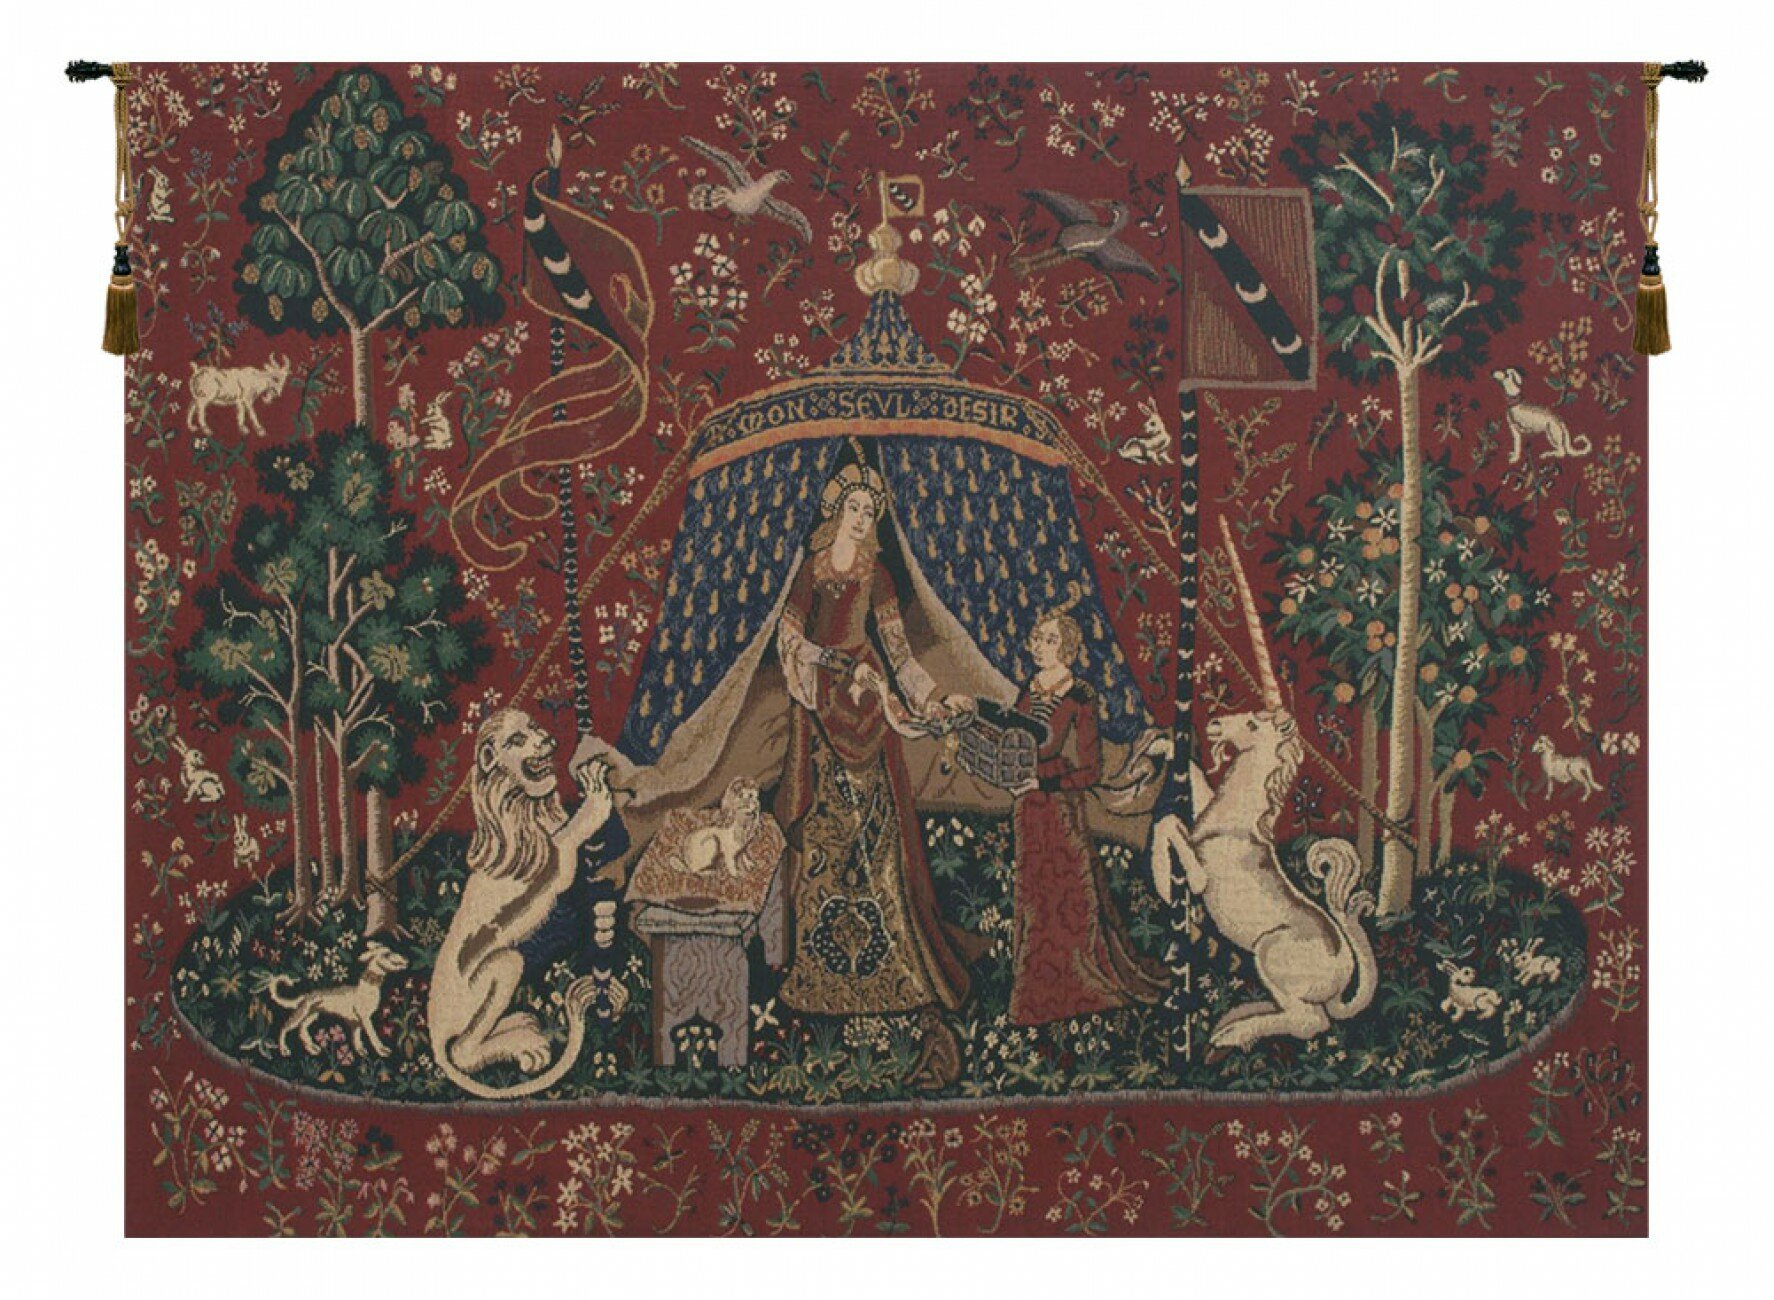 Lady And The Unicorn Wall Hanging Pertaining To Latest Blended Fabric Godfrey Of Bouillon Wall Hangings (View 2 of 20)